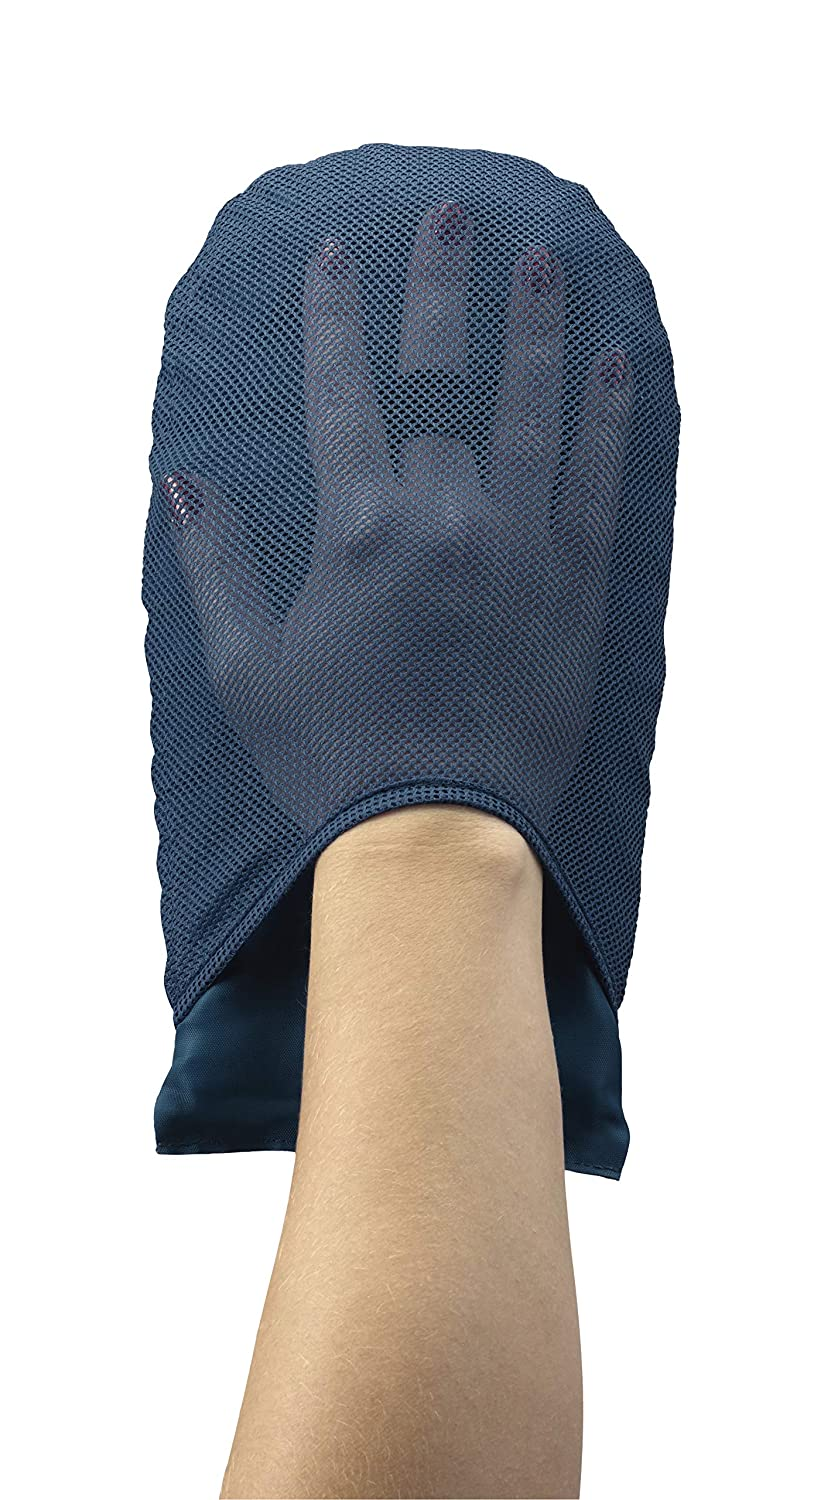 Conair Complete Care Protective Garment Steaming Mitt; Creates a Firm Backing While Steaming